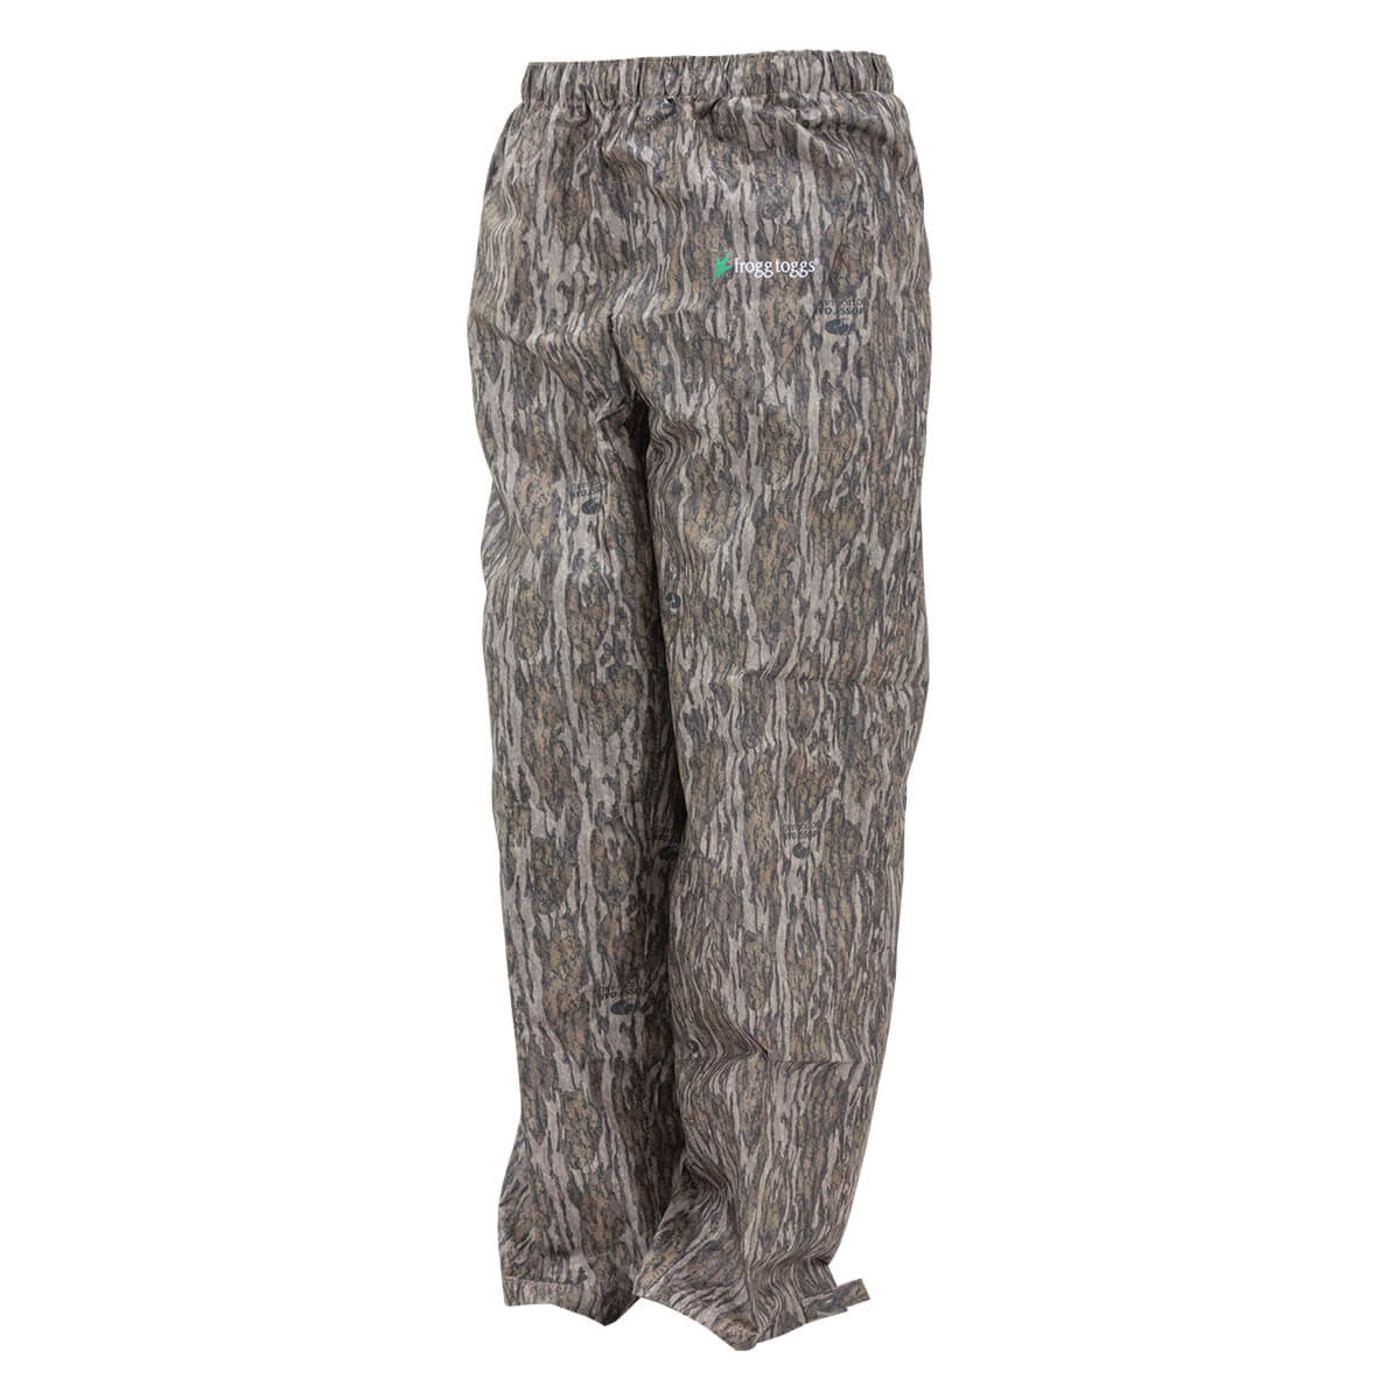 Frogg Toggs Pro Action Camo Pants in Mossy Oak Bottomland Color